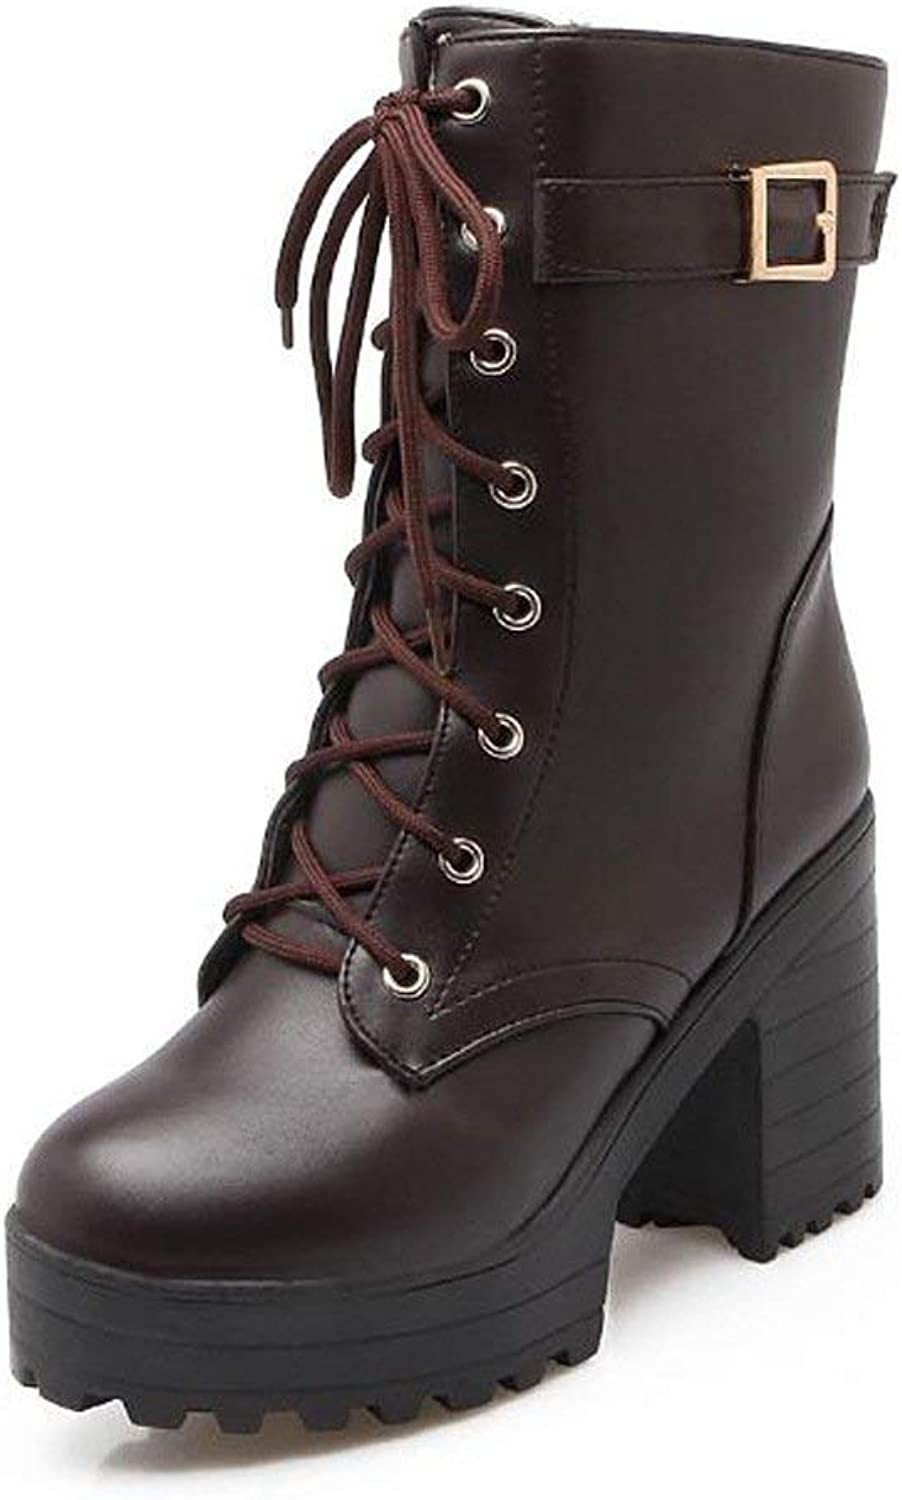 Women's Lace-up Formal Wedge Combat Platform Mid-Calf High Martin Boots